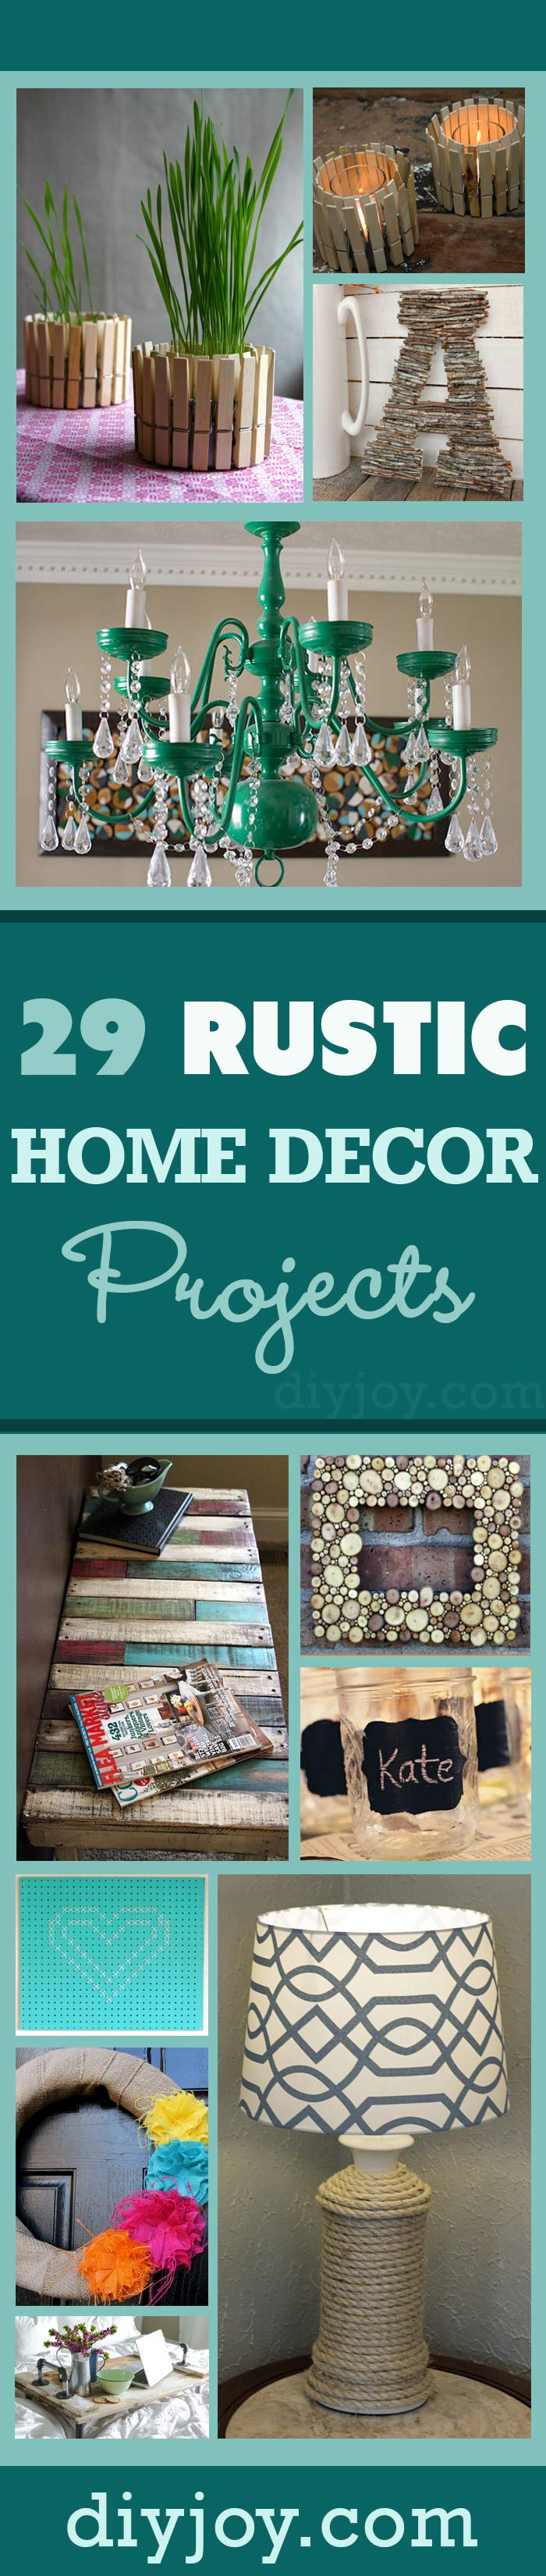 29 Rustic Diy Home Decor Ideas Page 3 Of 6 Diy Joy